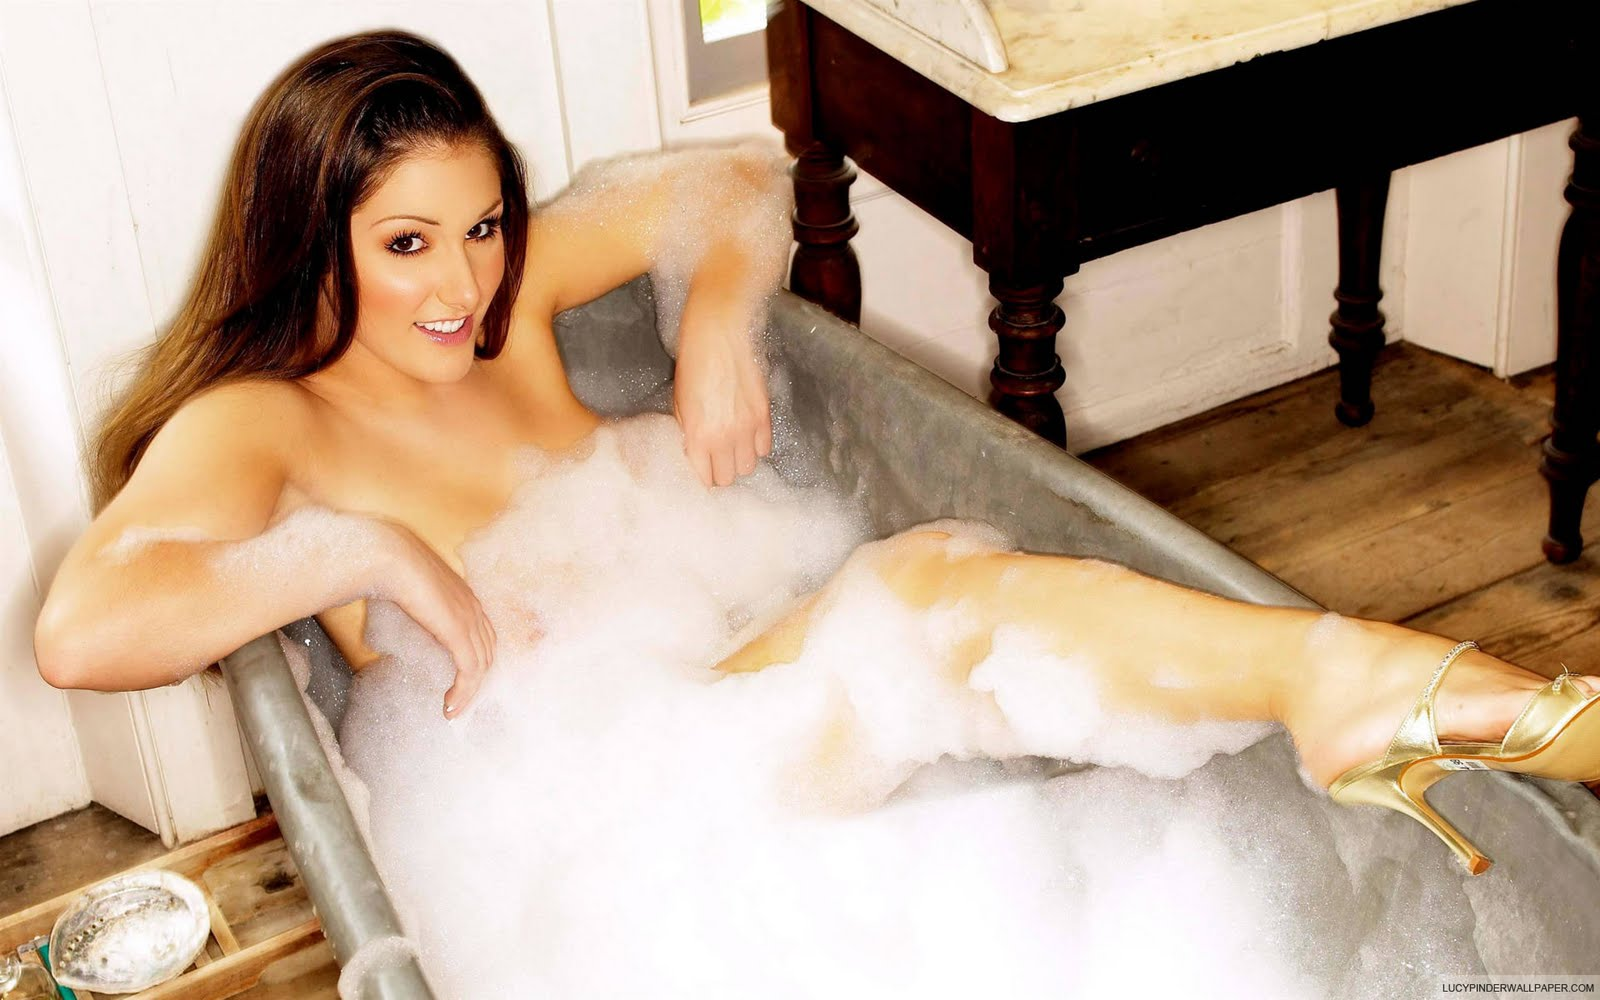 http://4.bp.blogspot.com/-oFCMzonv15I/TaR_P6b6EhI/AAAAAAAAJFE/Q2CypYFEXBw/s1600/lucy-pinder-wallpaper-1-lucy-pinder-glamour-model-Modelling-career-lucy-1600x1200-pinder-paos-wallpapers-nude-supery-big-ass-nice-boobs-lucy-pinder-biography-lucy-topless-2.jpg